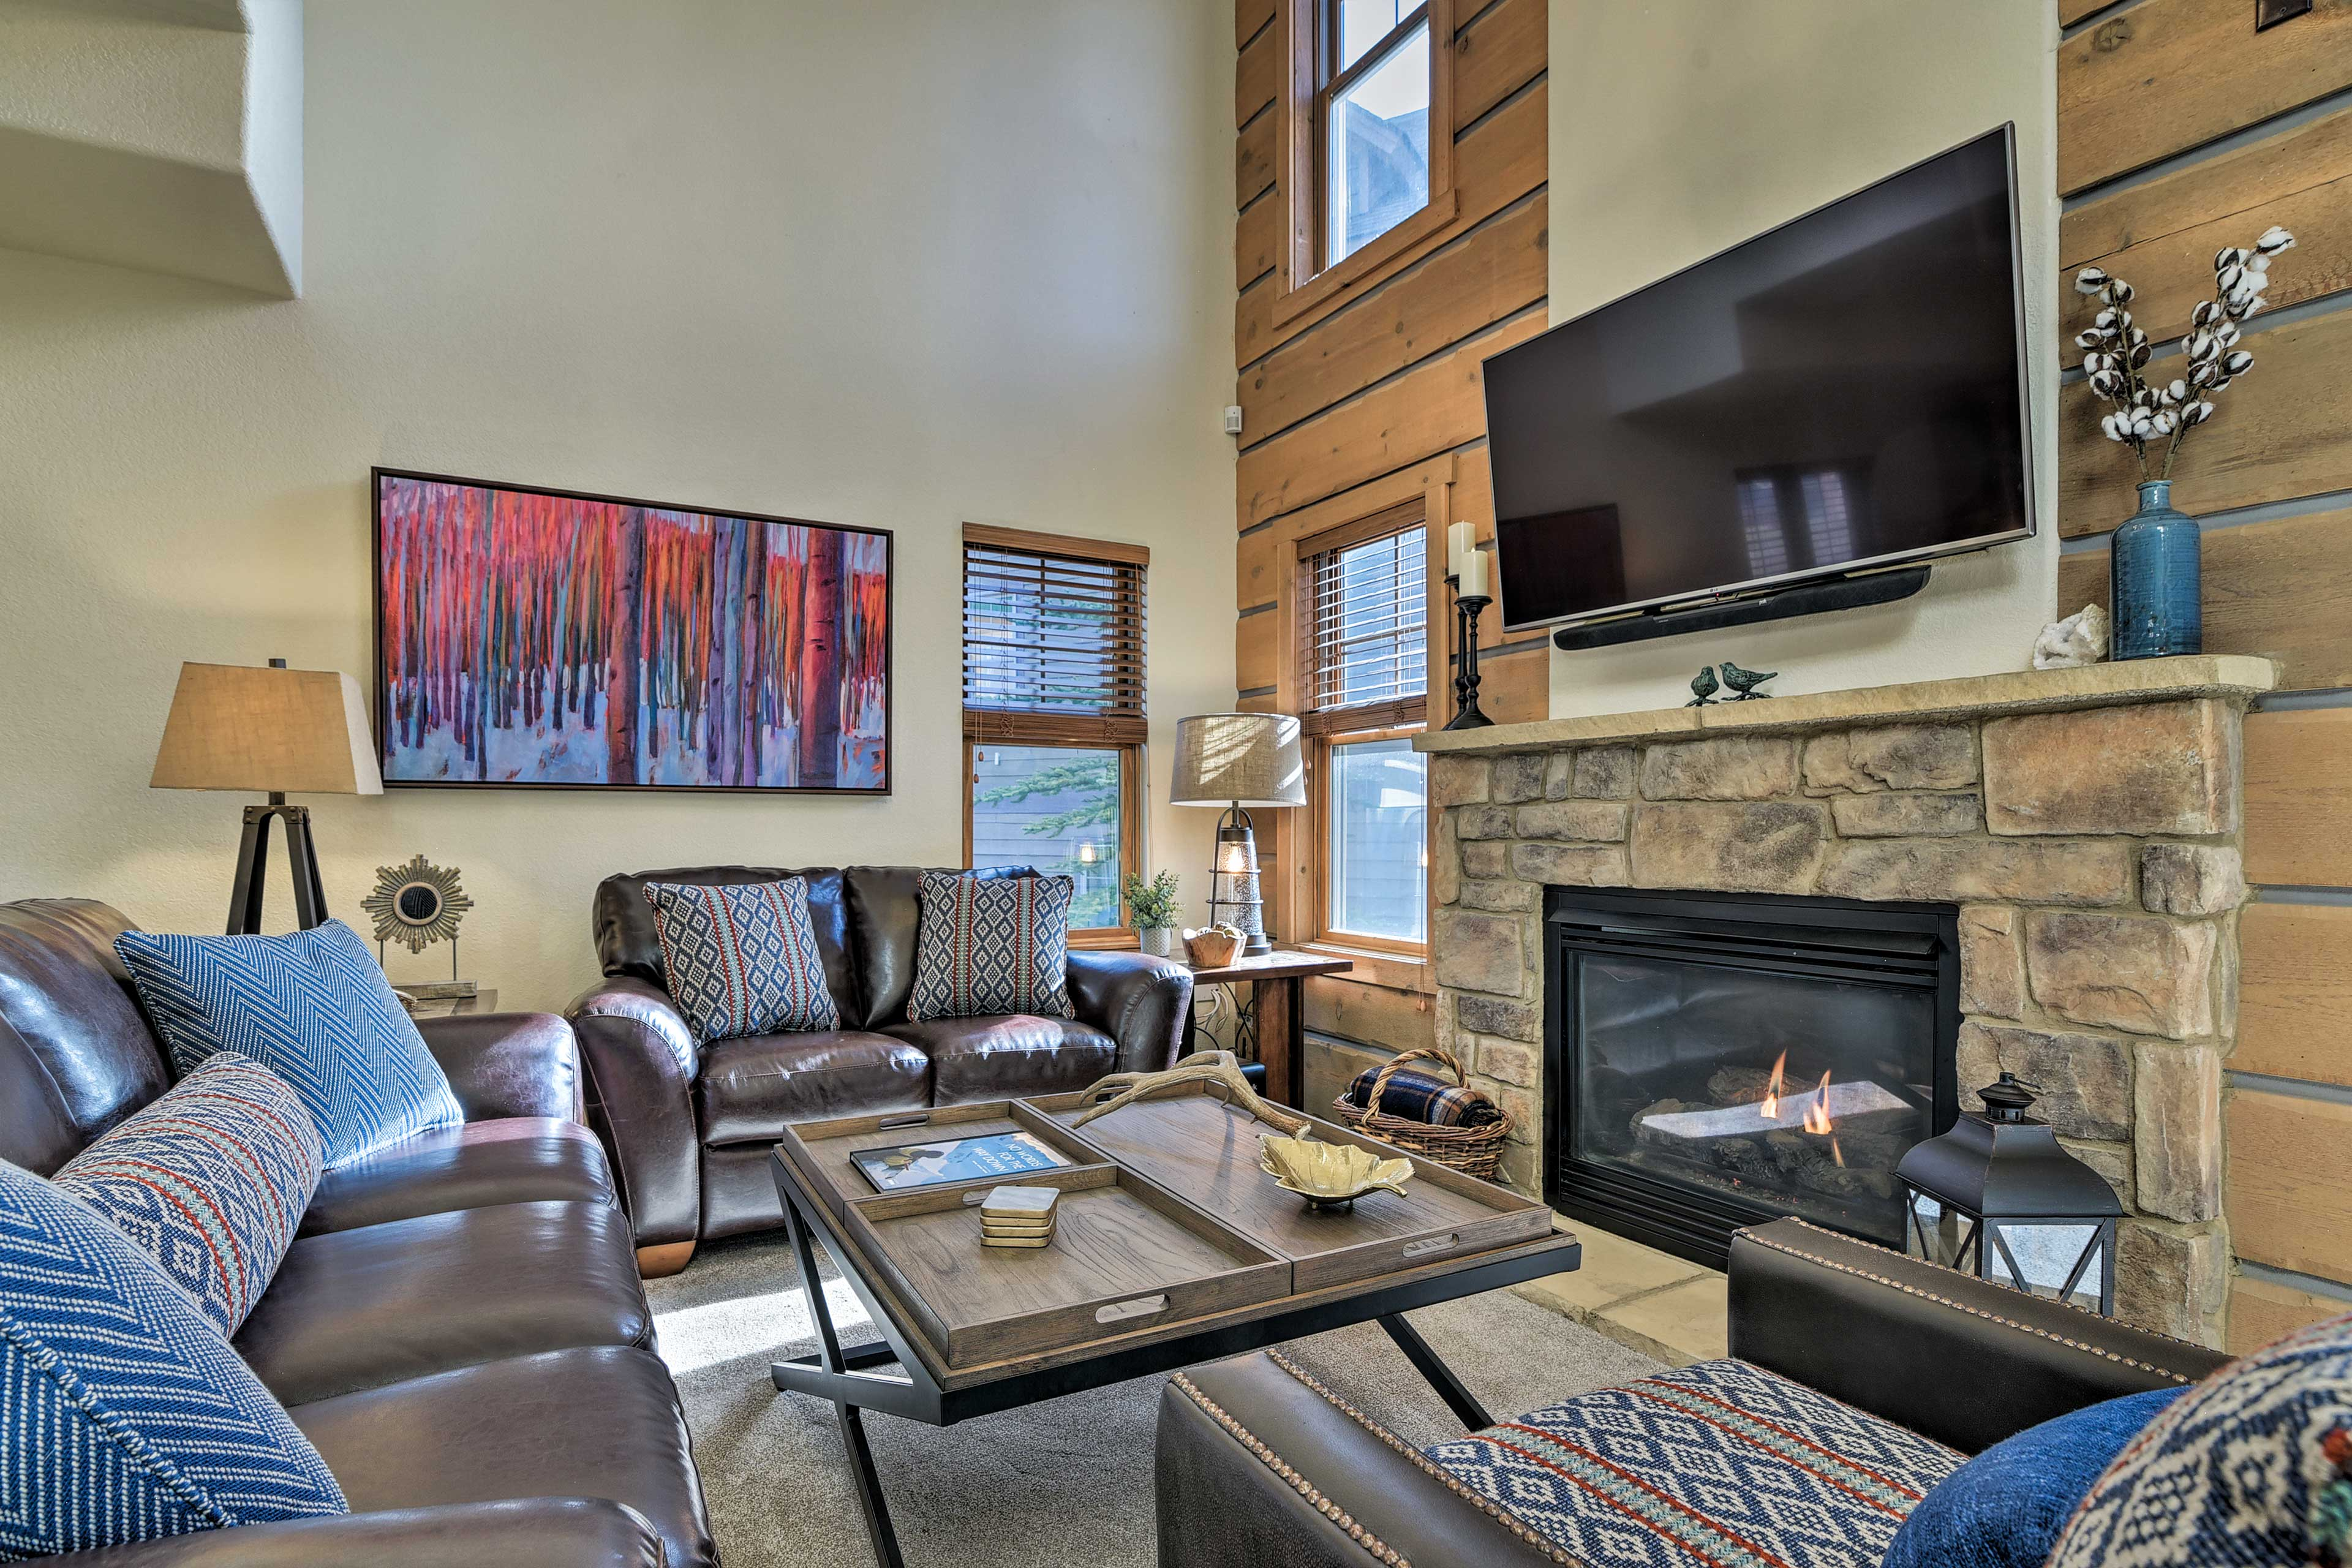 Boasting over 2,000 square feet, this vacation rental hosts up to 9.